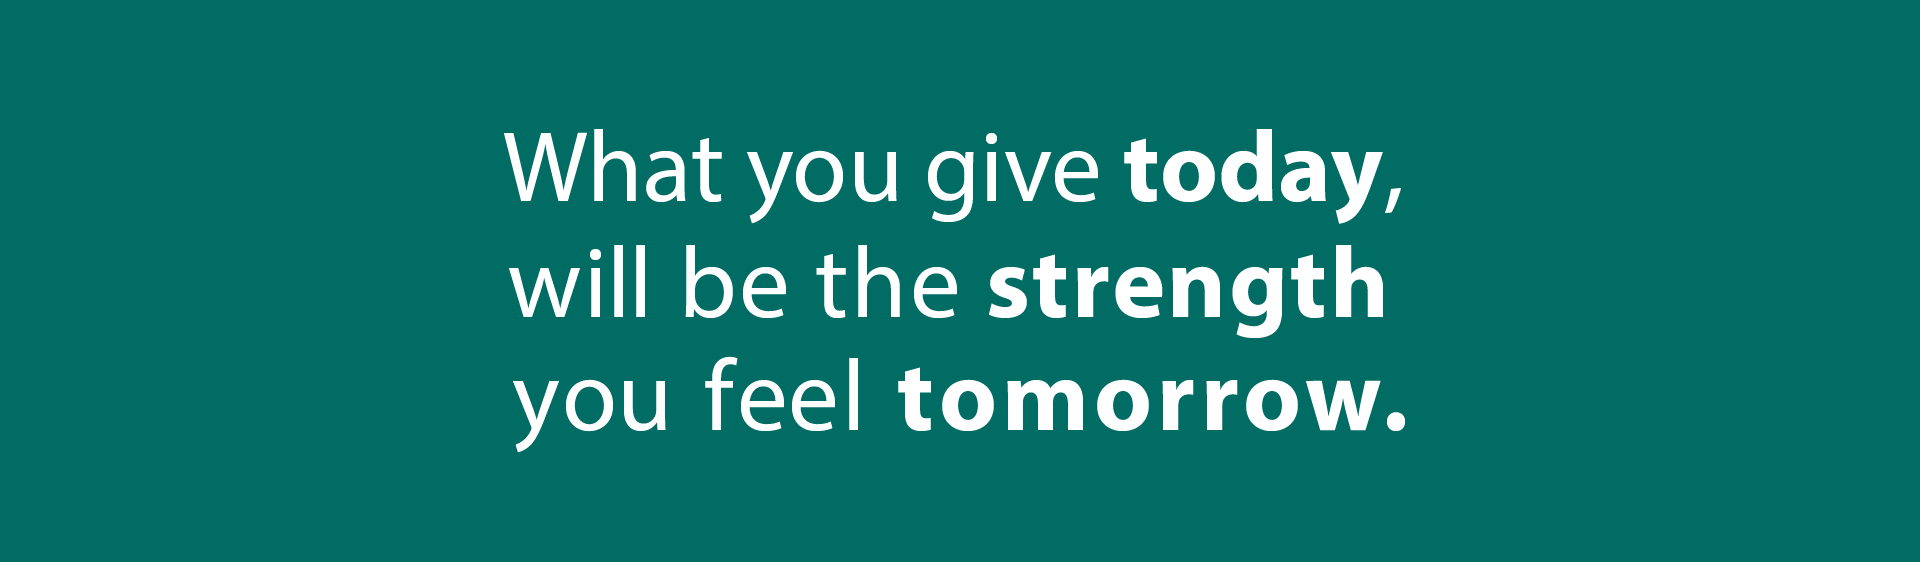 What You Give Today, Will Be The Strength You Feel Tomorrow.